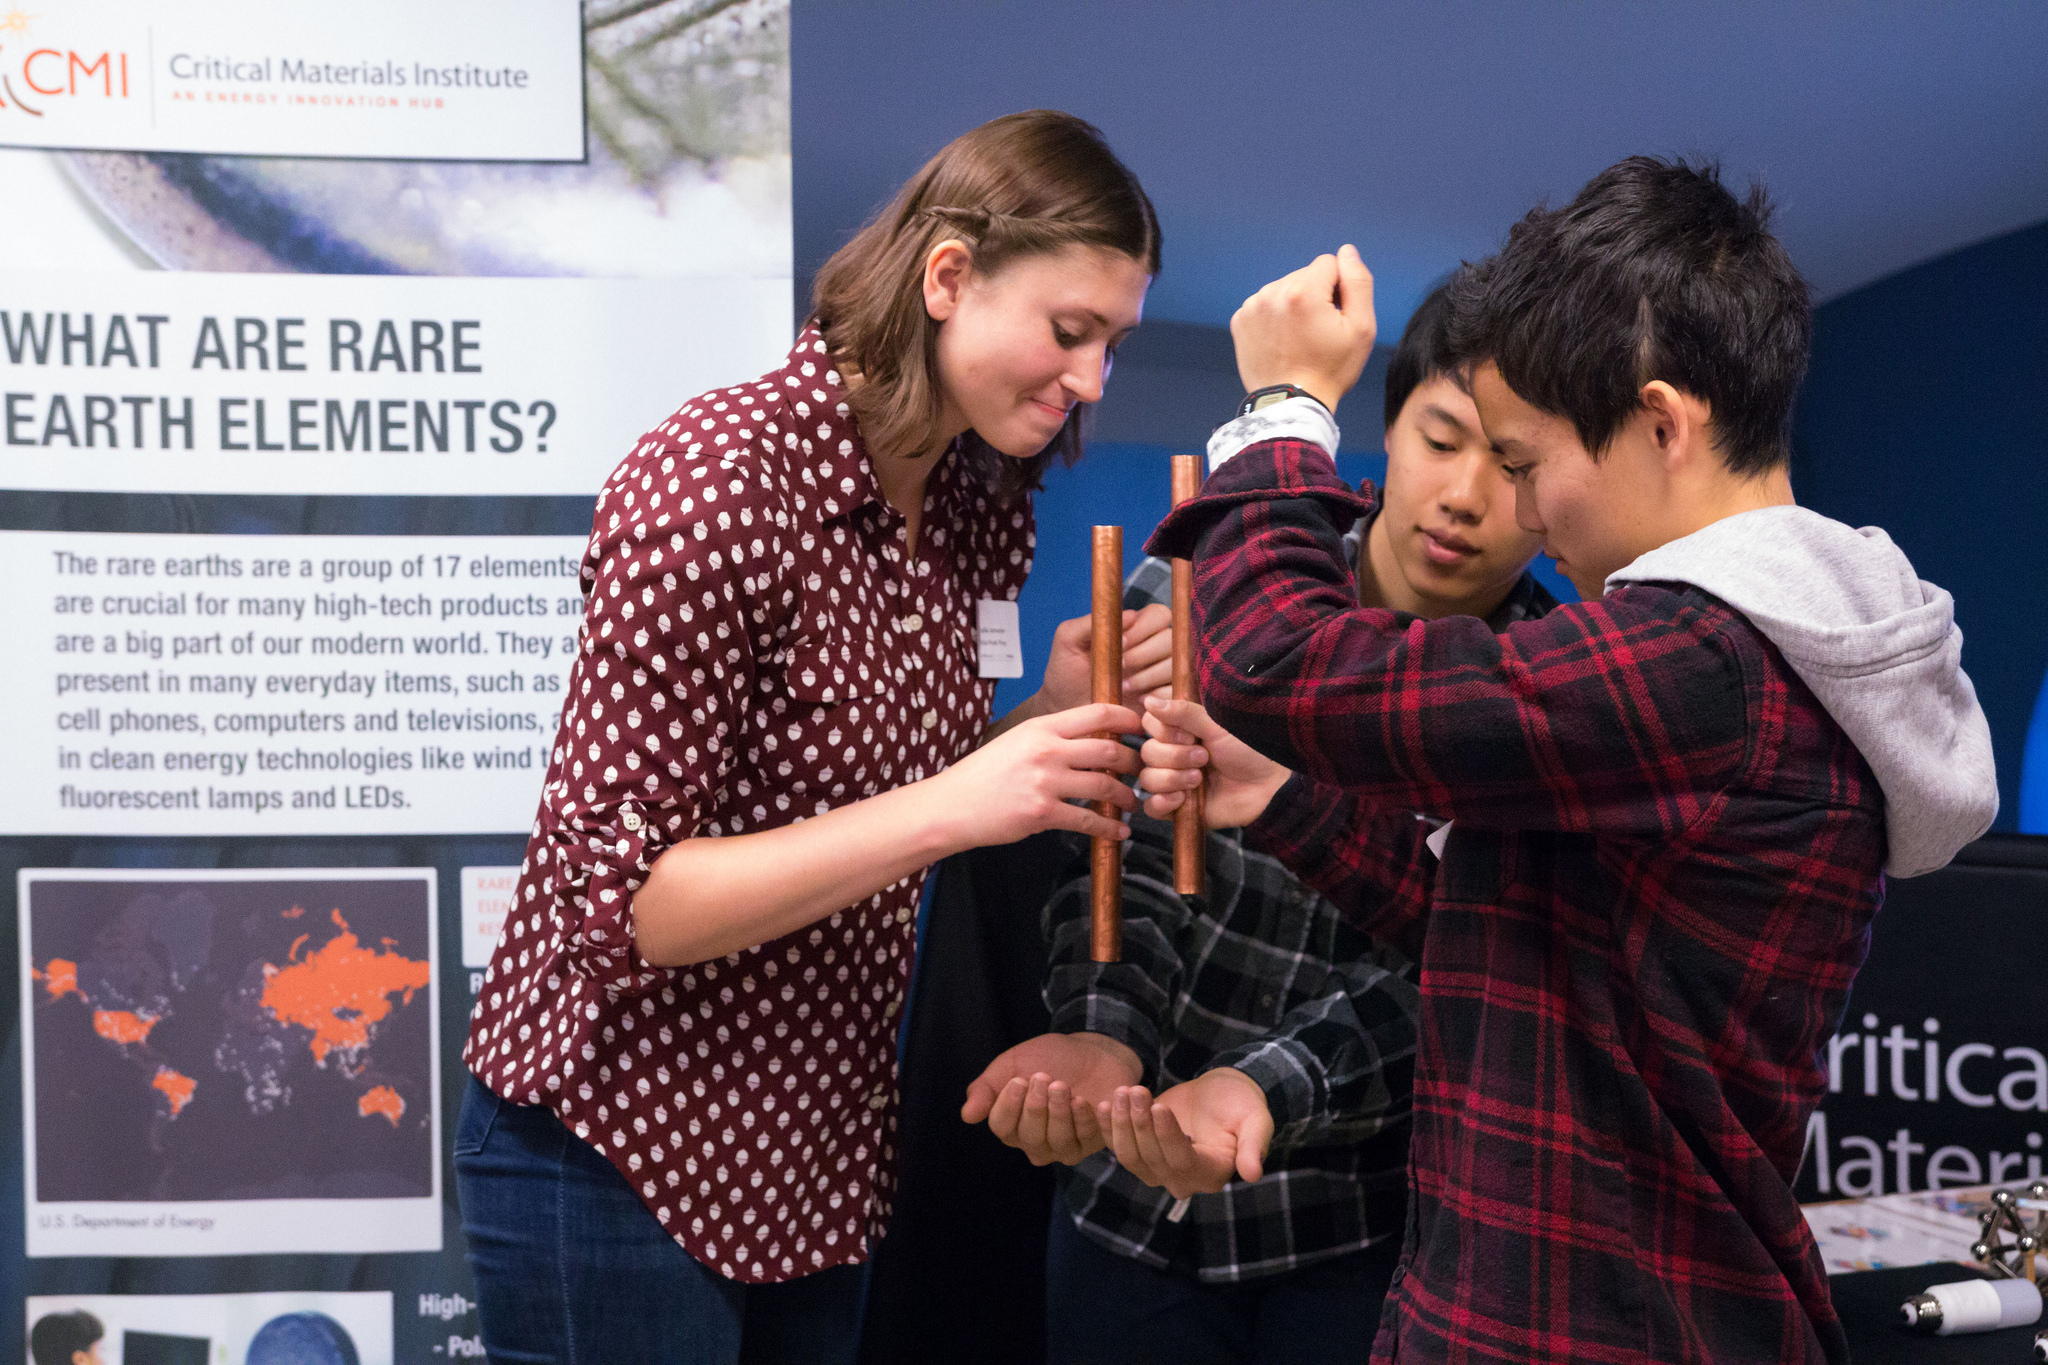 High school students participate in an interactive exercise at the Critical Materials Institute